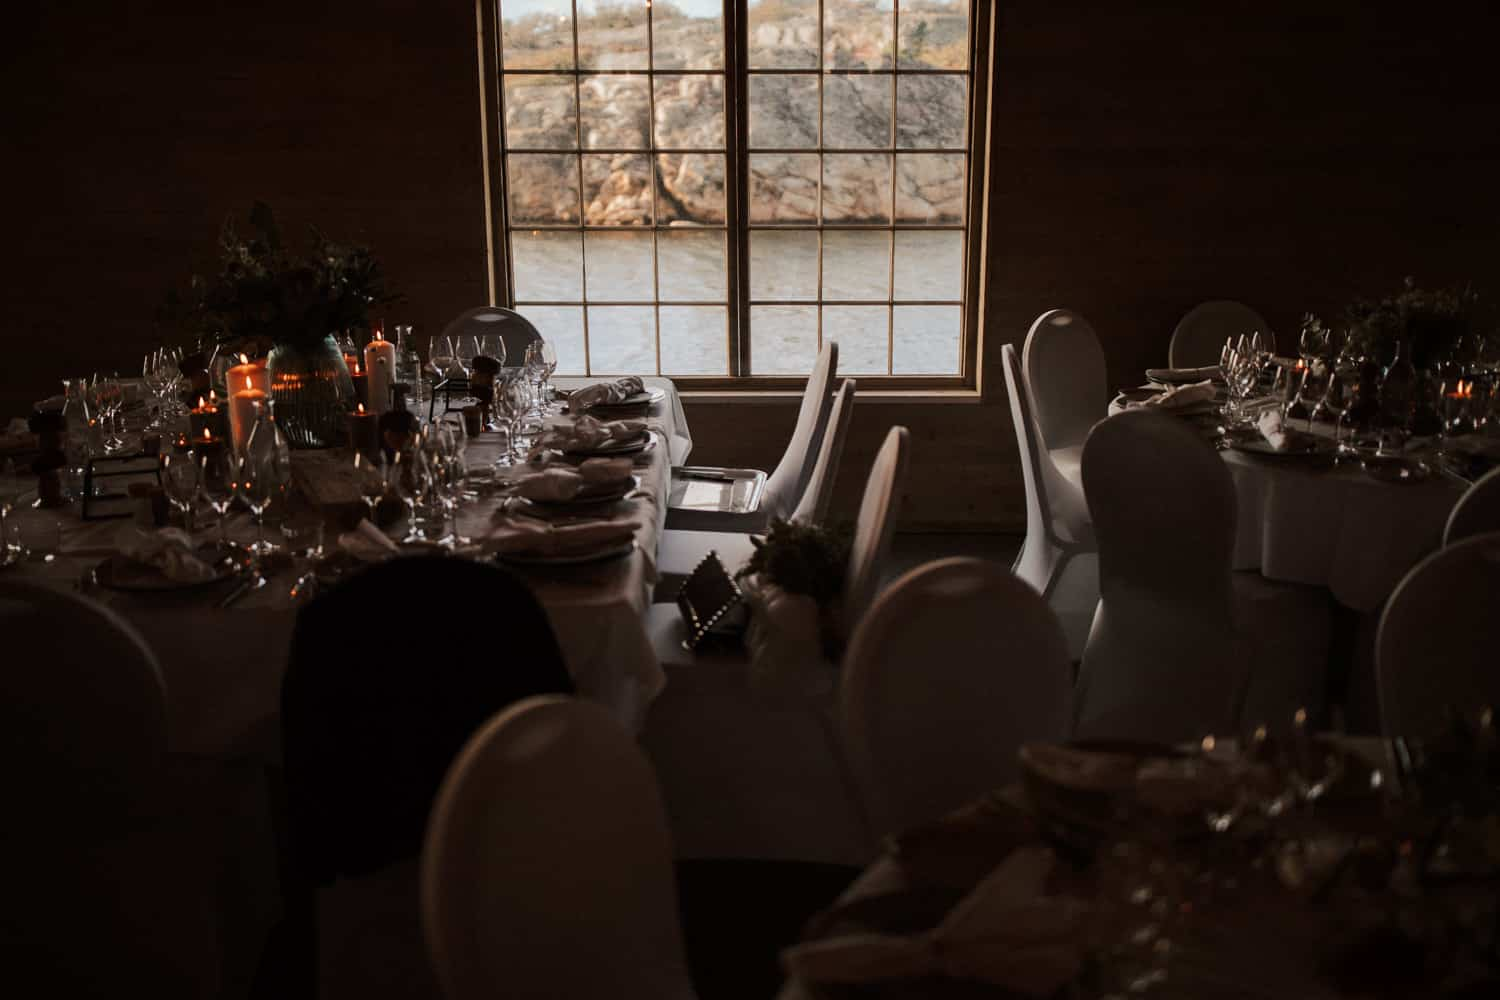 A room is equipped with wedding tables and chairs.